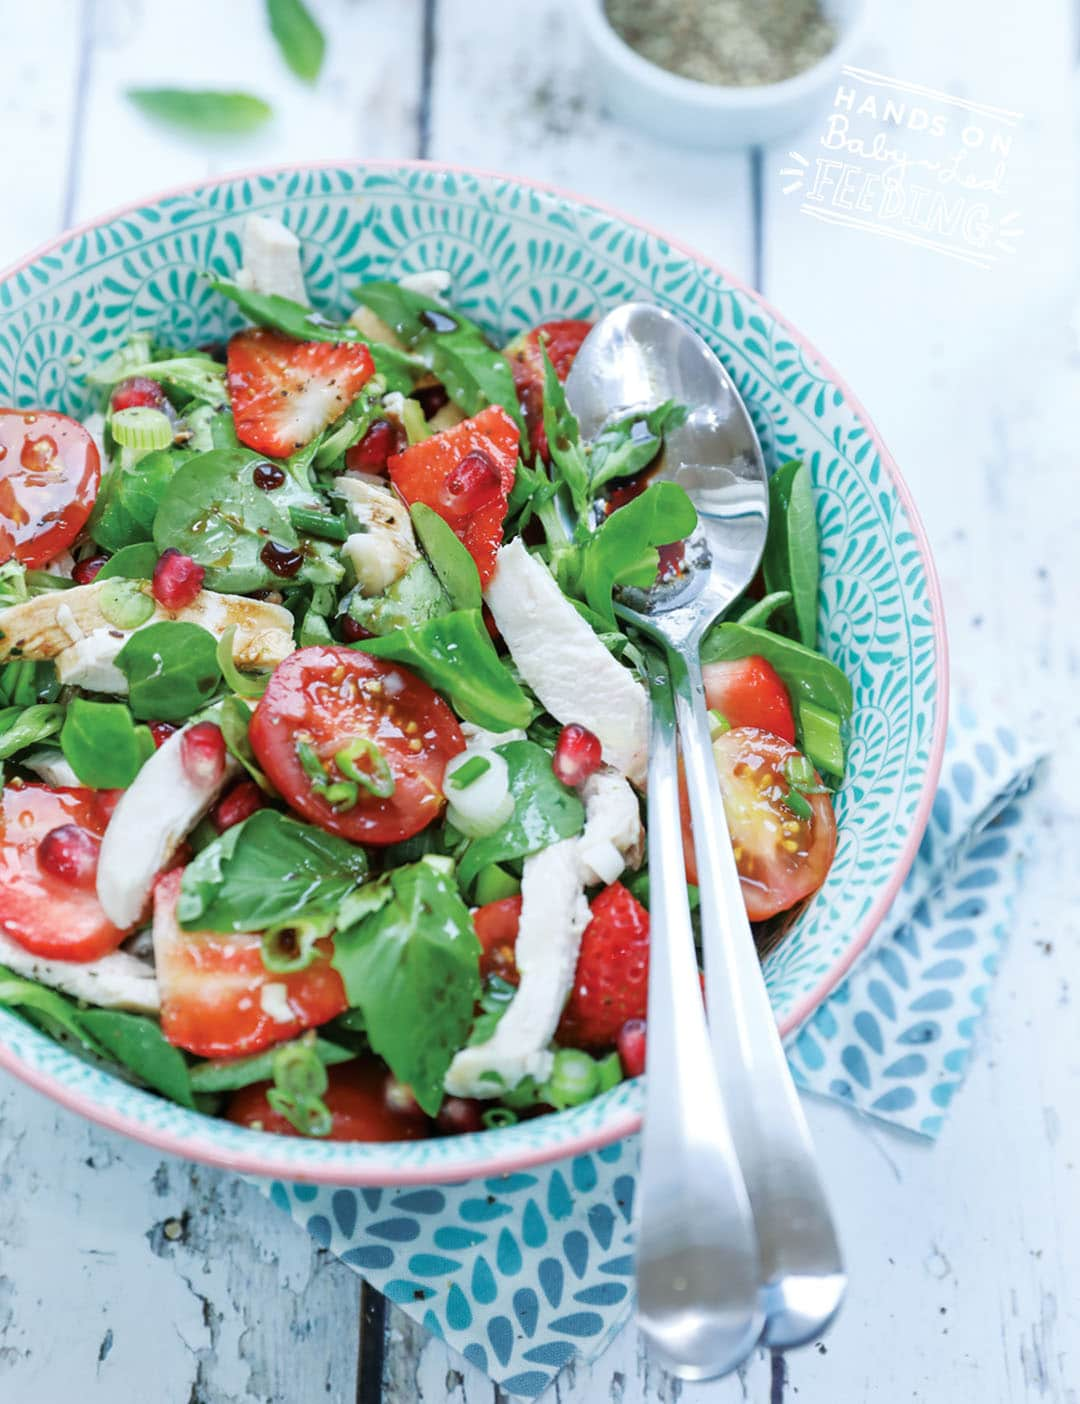 Chicken, Pomegrante and Strawberry Salad Recipe Images5